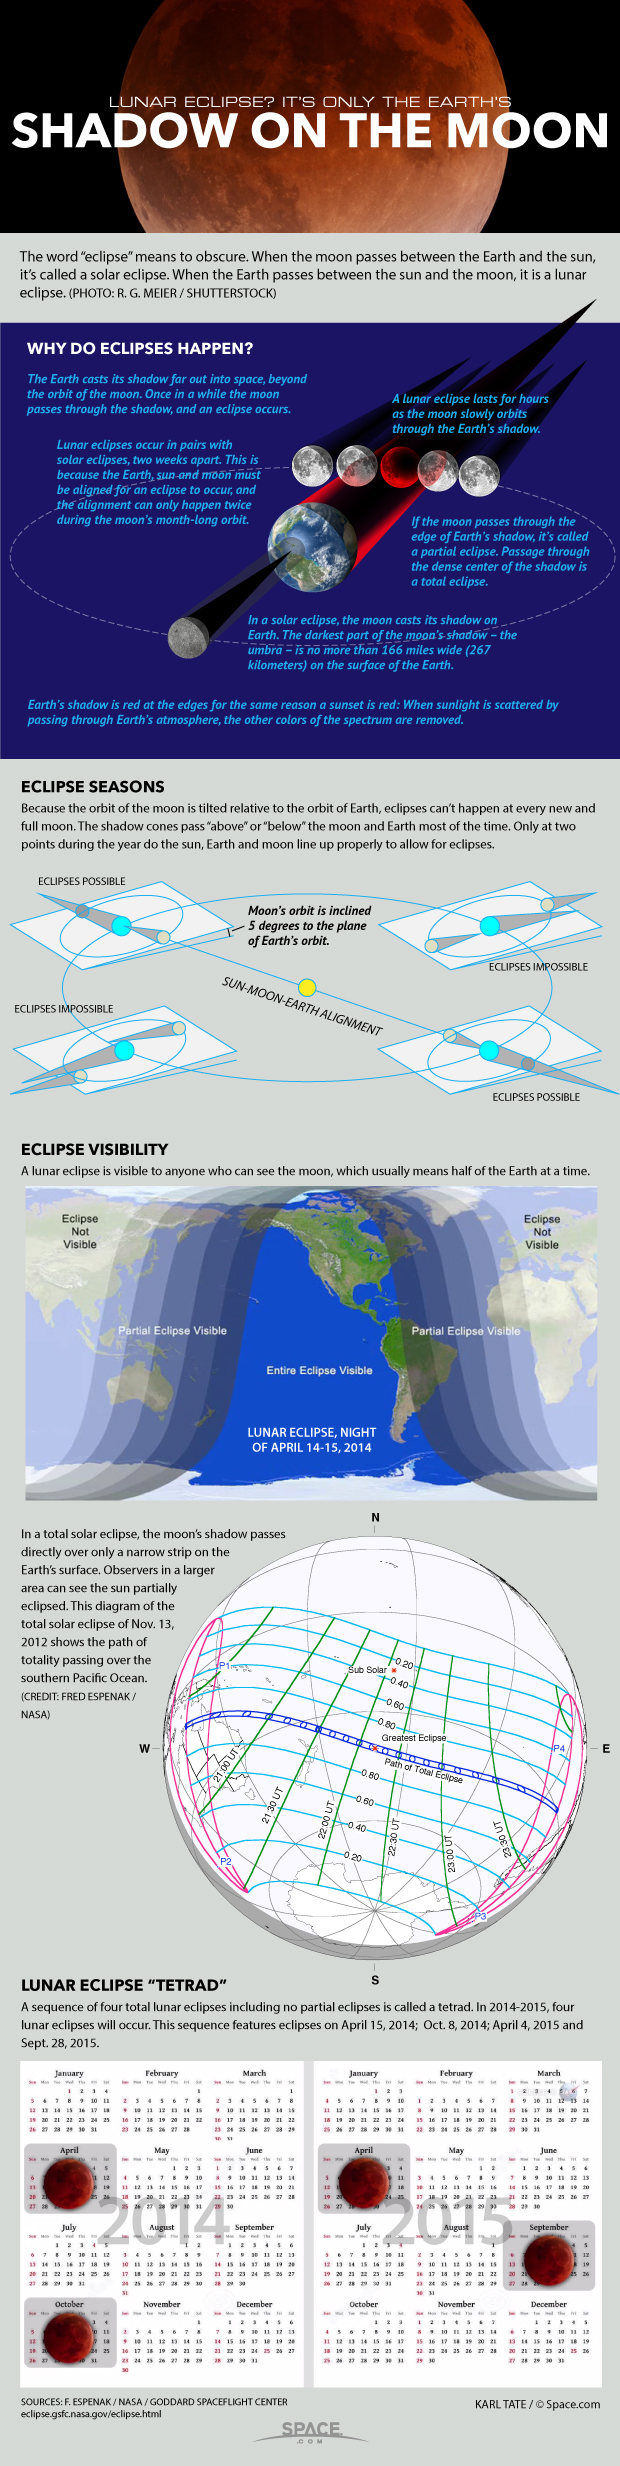 'Blood Moons' Explained: What Causes a Lunar Eclipse Tetrad? (Infographic)